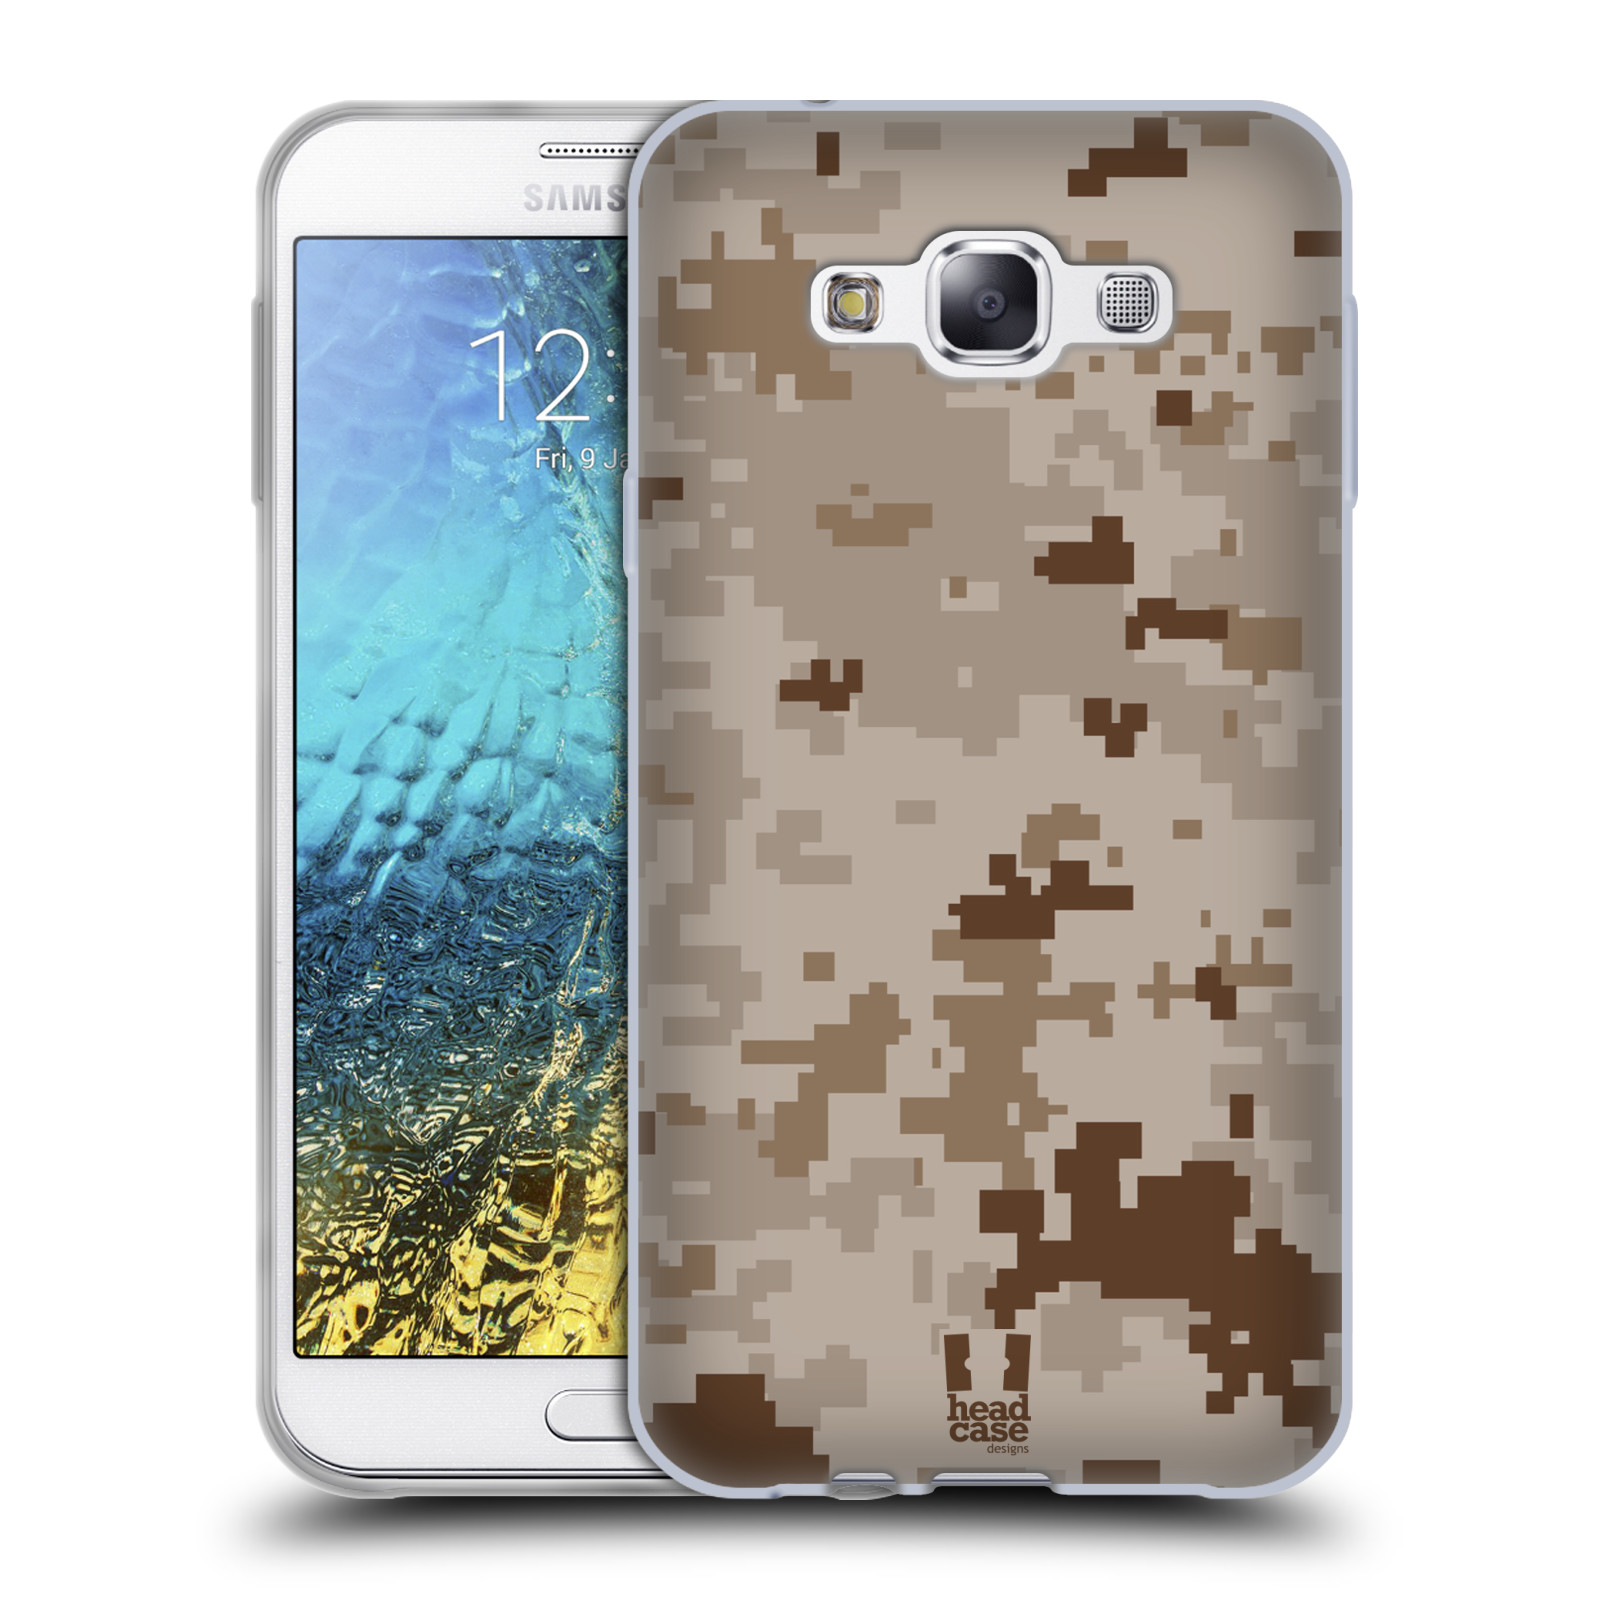 Head Case Design Military Camouflage Series 2 Gel